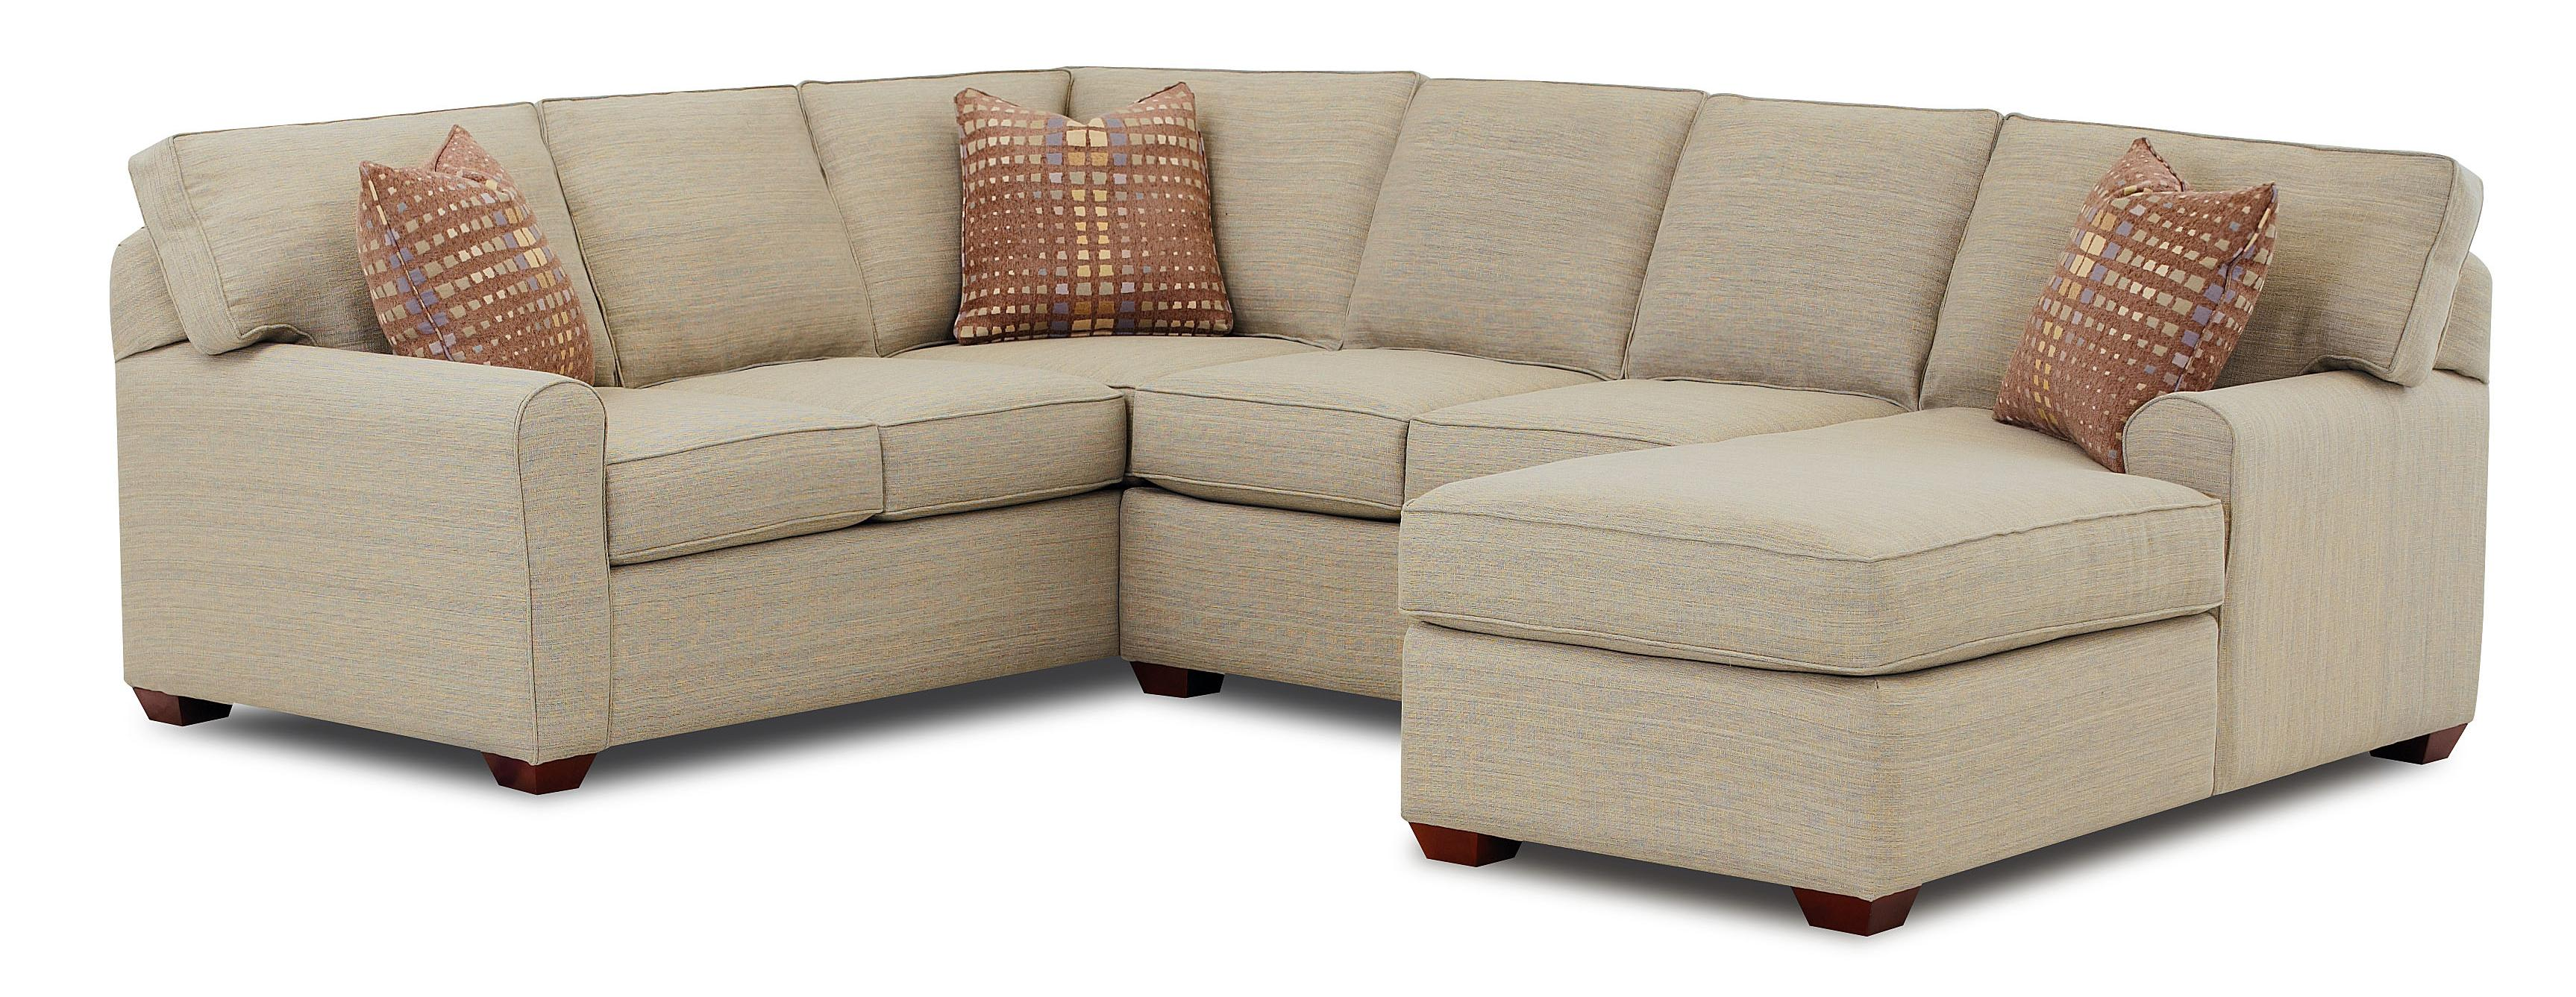 sofa chase small brown leather bed klaussner hybrid sectional with right facing chaise